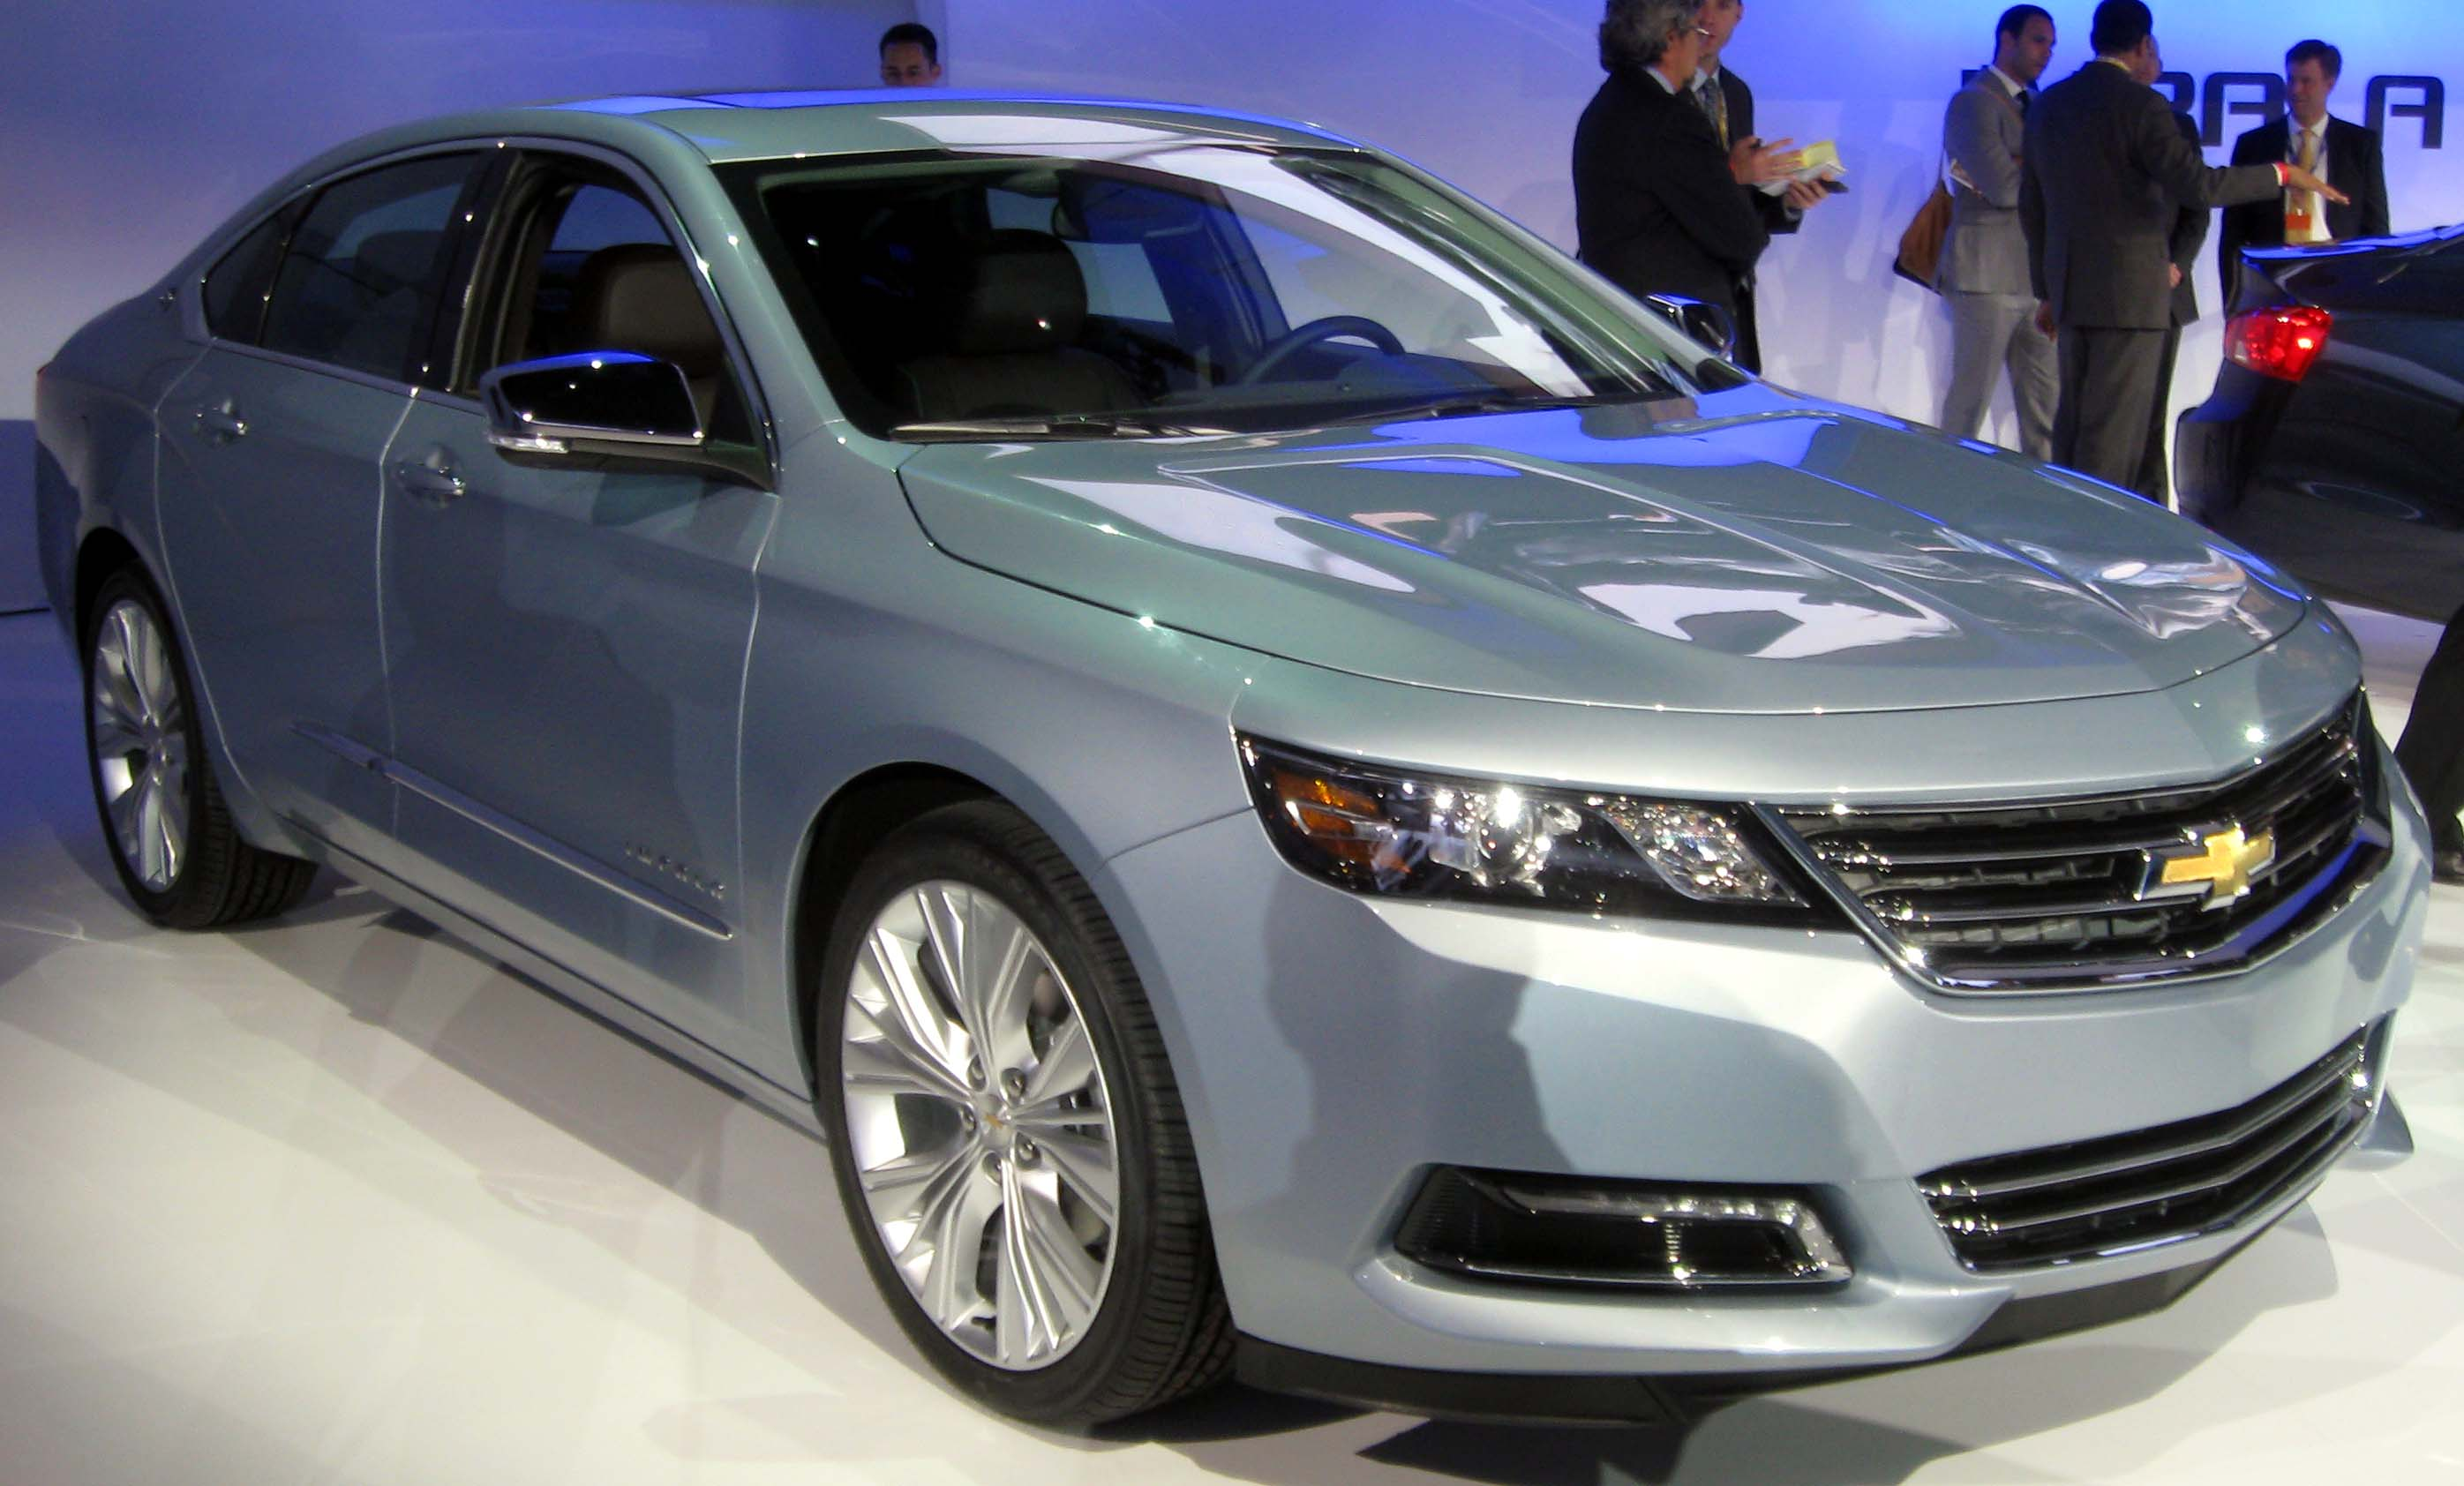 Description 2014 Chevrolet Impala LTZ -- 2012 NYIAS 2.JPG